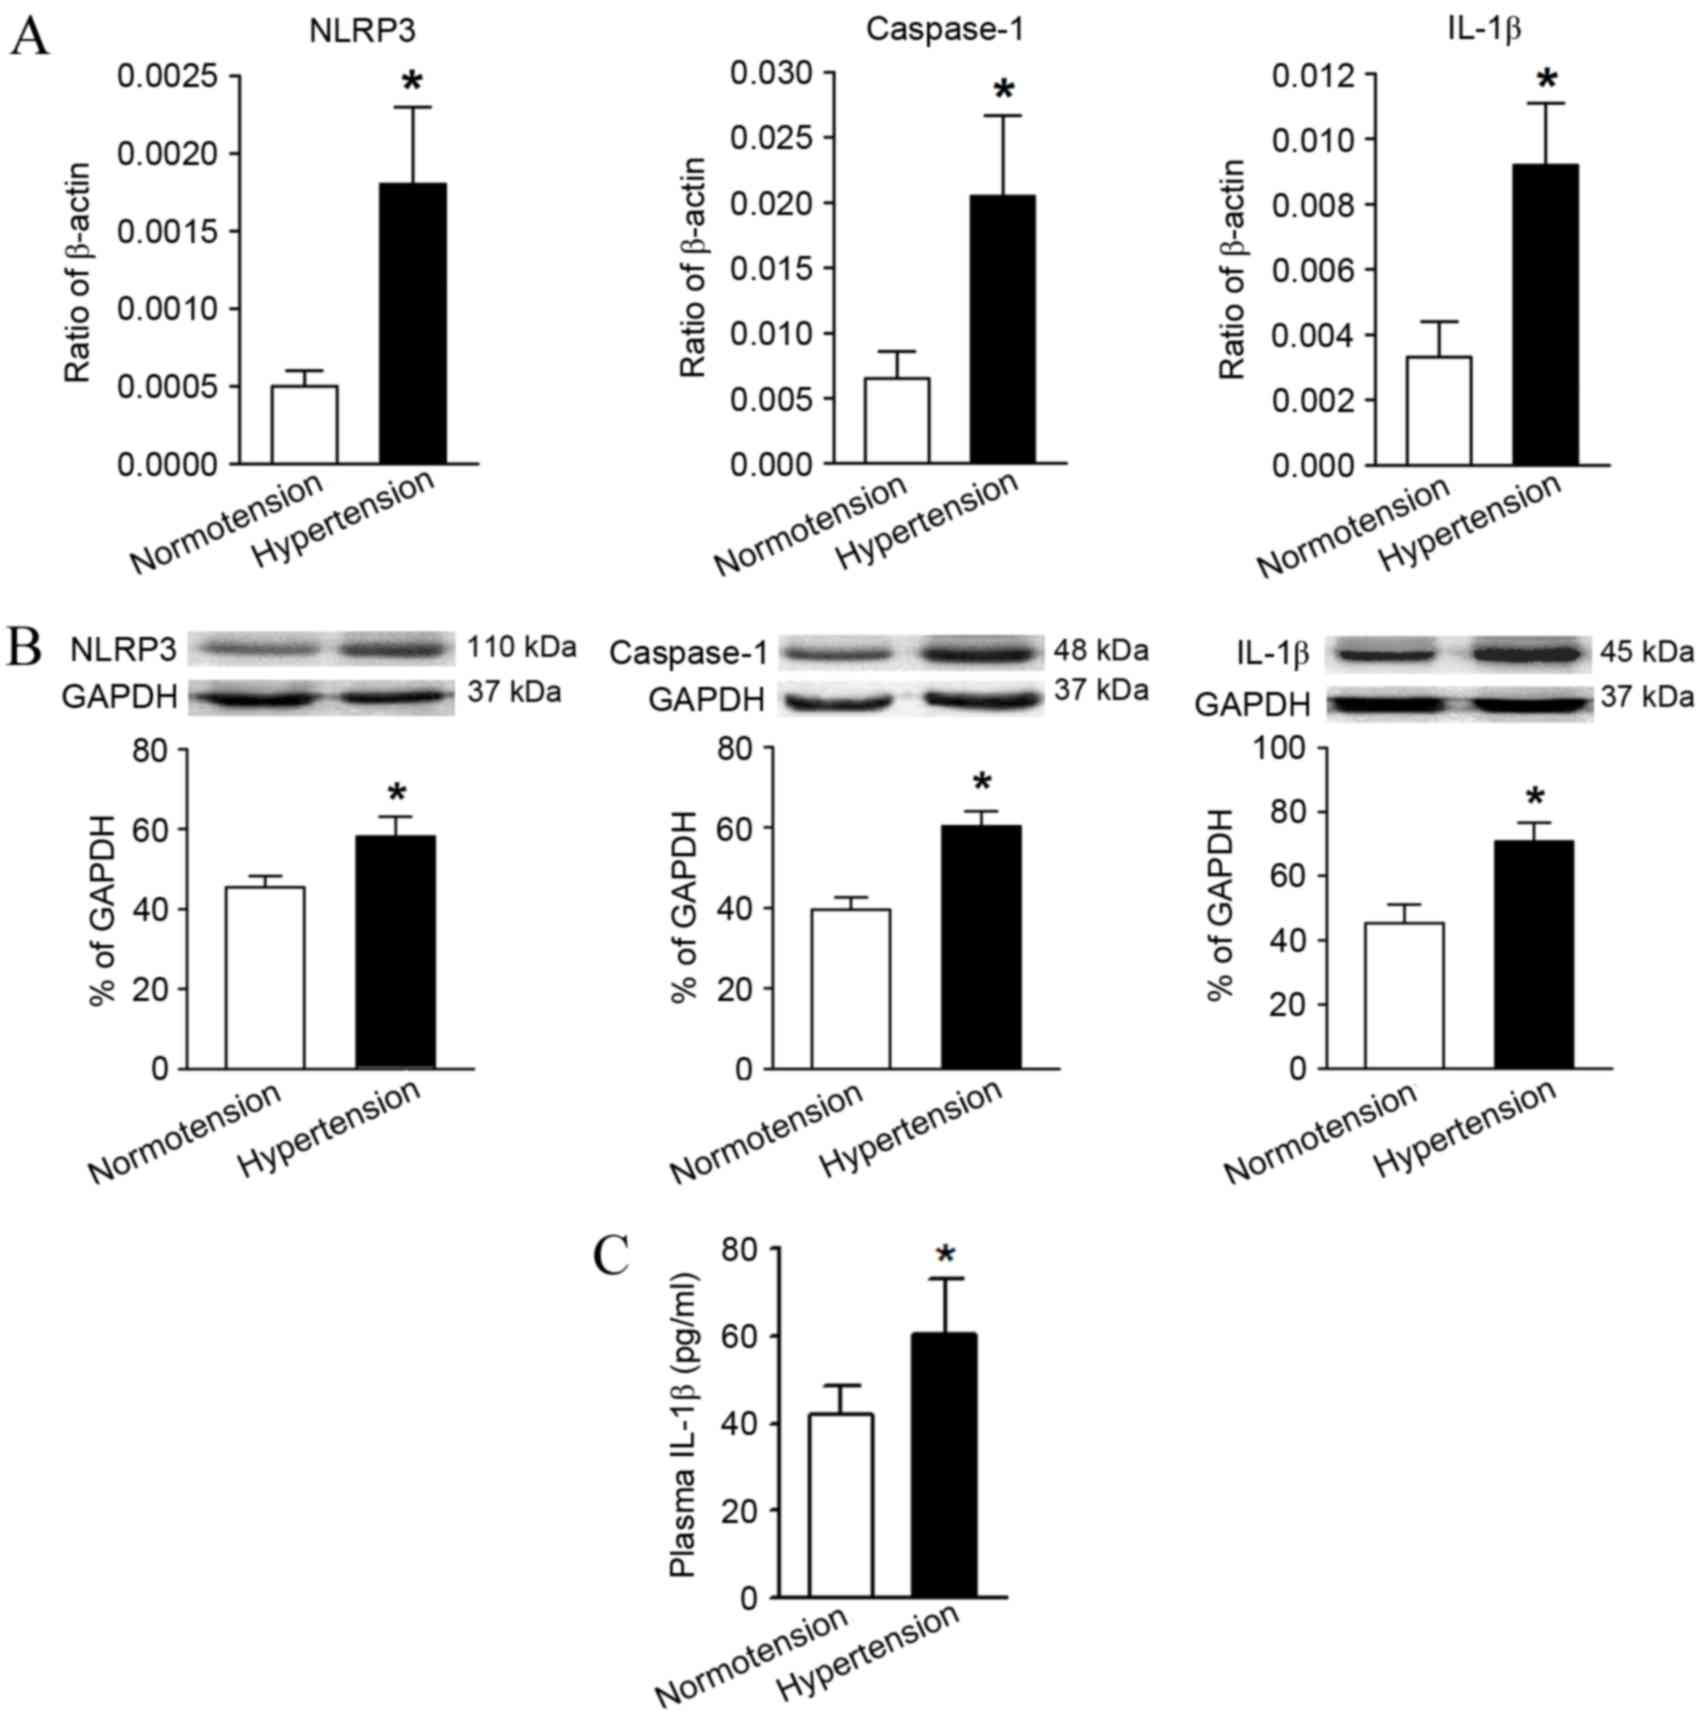 T Lymphocyte Kv13 Channel Activation Triggers The Nlrp3 Diagram Of Bridge Components Bing Images Figure 3 Comparison Expression Levels Molecules Associated With Inflammasome Pathway And Its Downstream Product Il 1